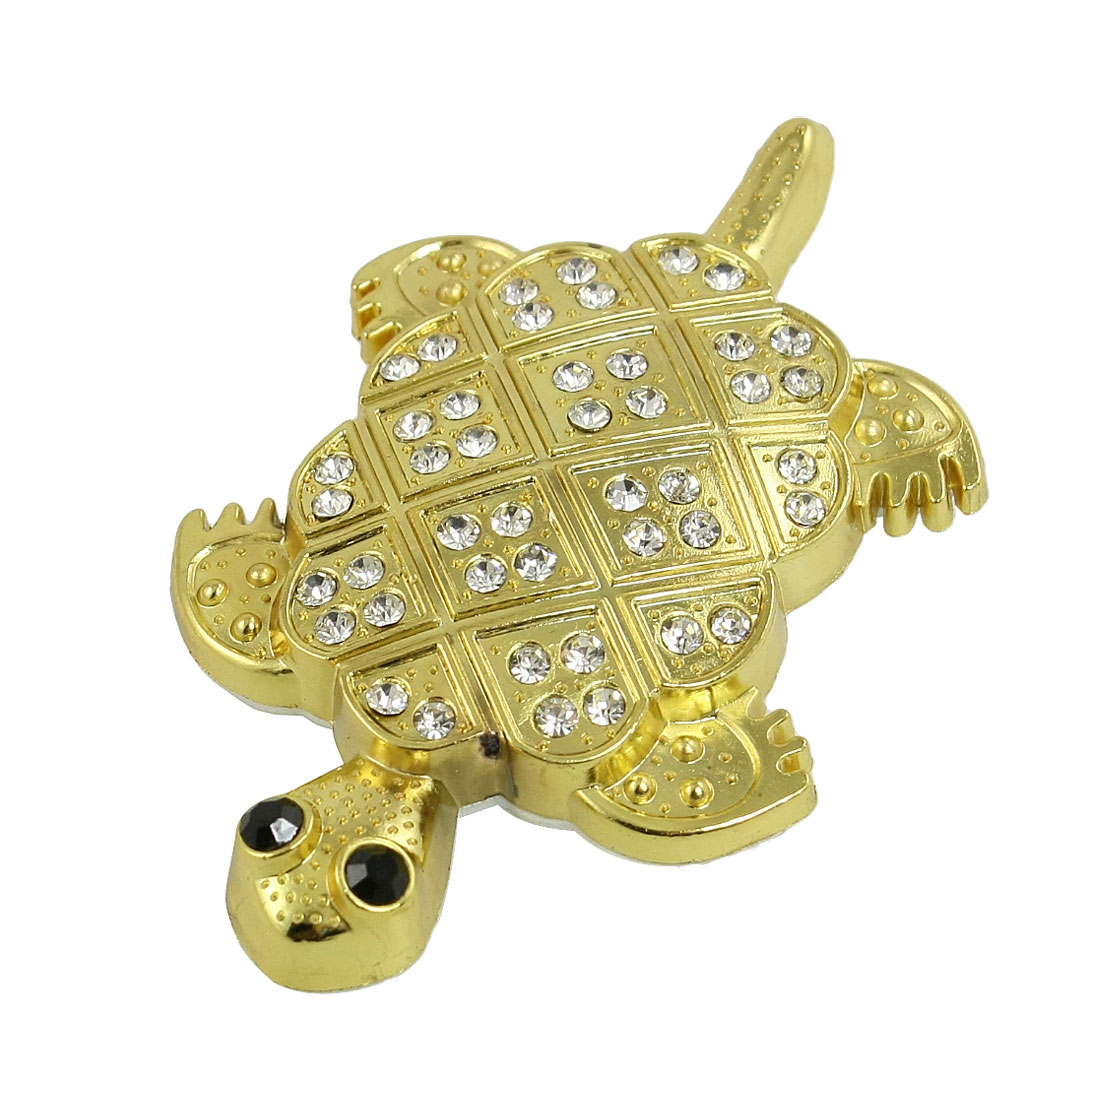 Rhinestone Inlaid Gold Tone 3D Tortoise Sticker Decal for Car